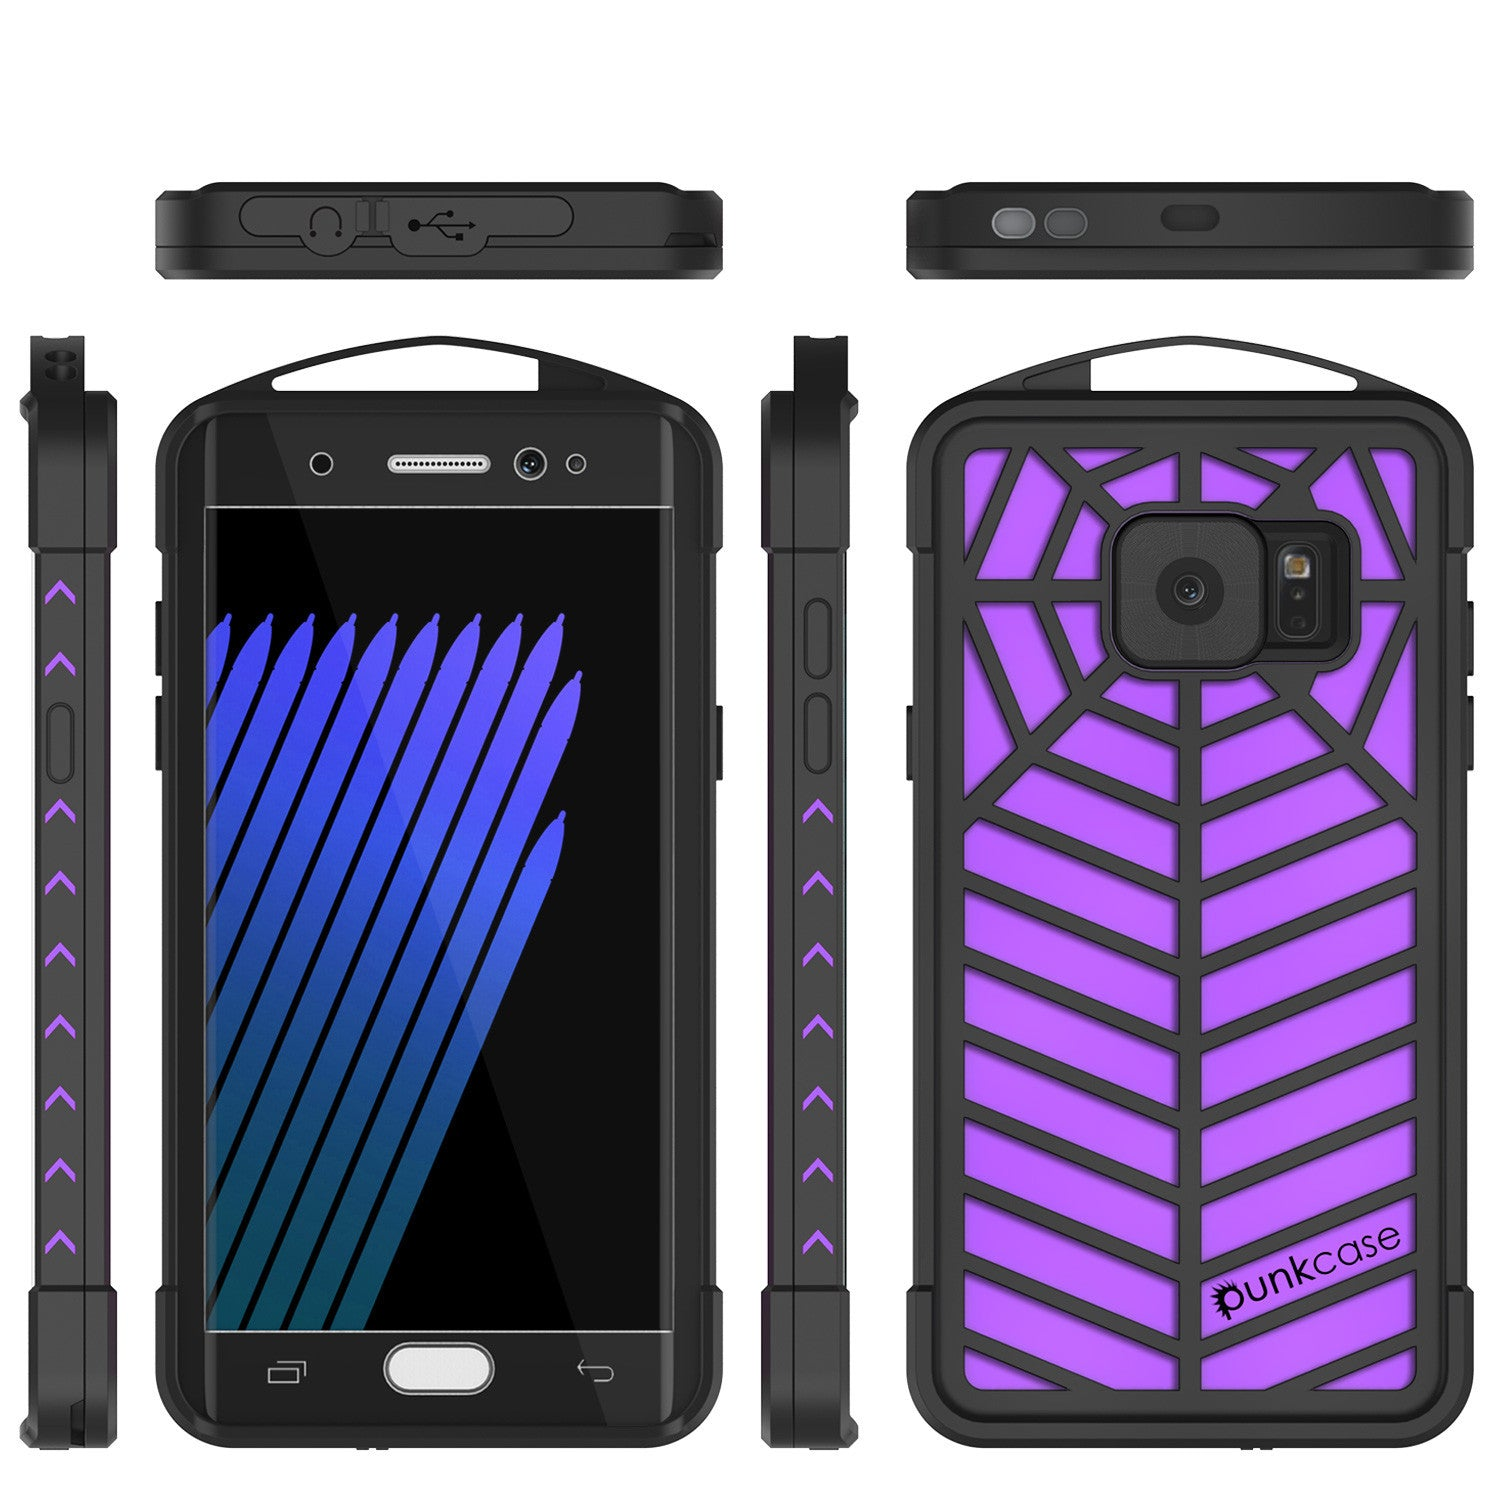 Galaxy Note 7 Waterproof Case, Punkcase WEBSTER Series, Putple | Heavy Duty Armor Cover